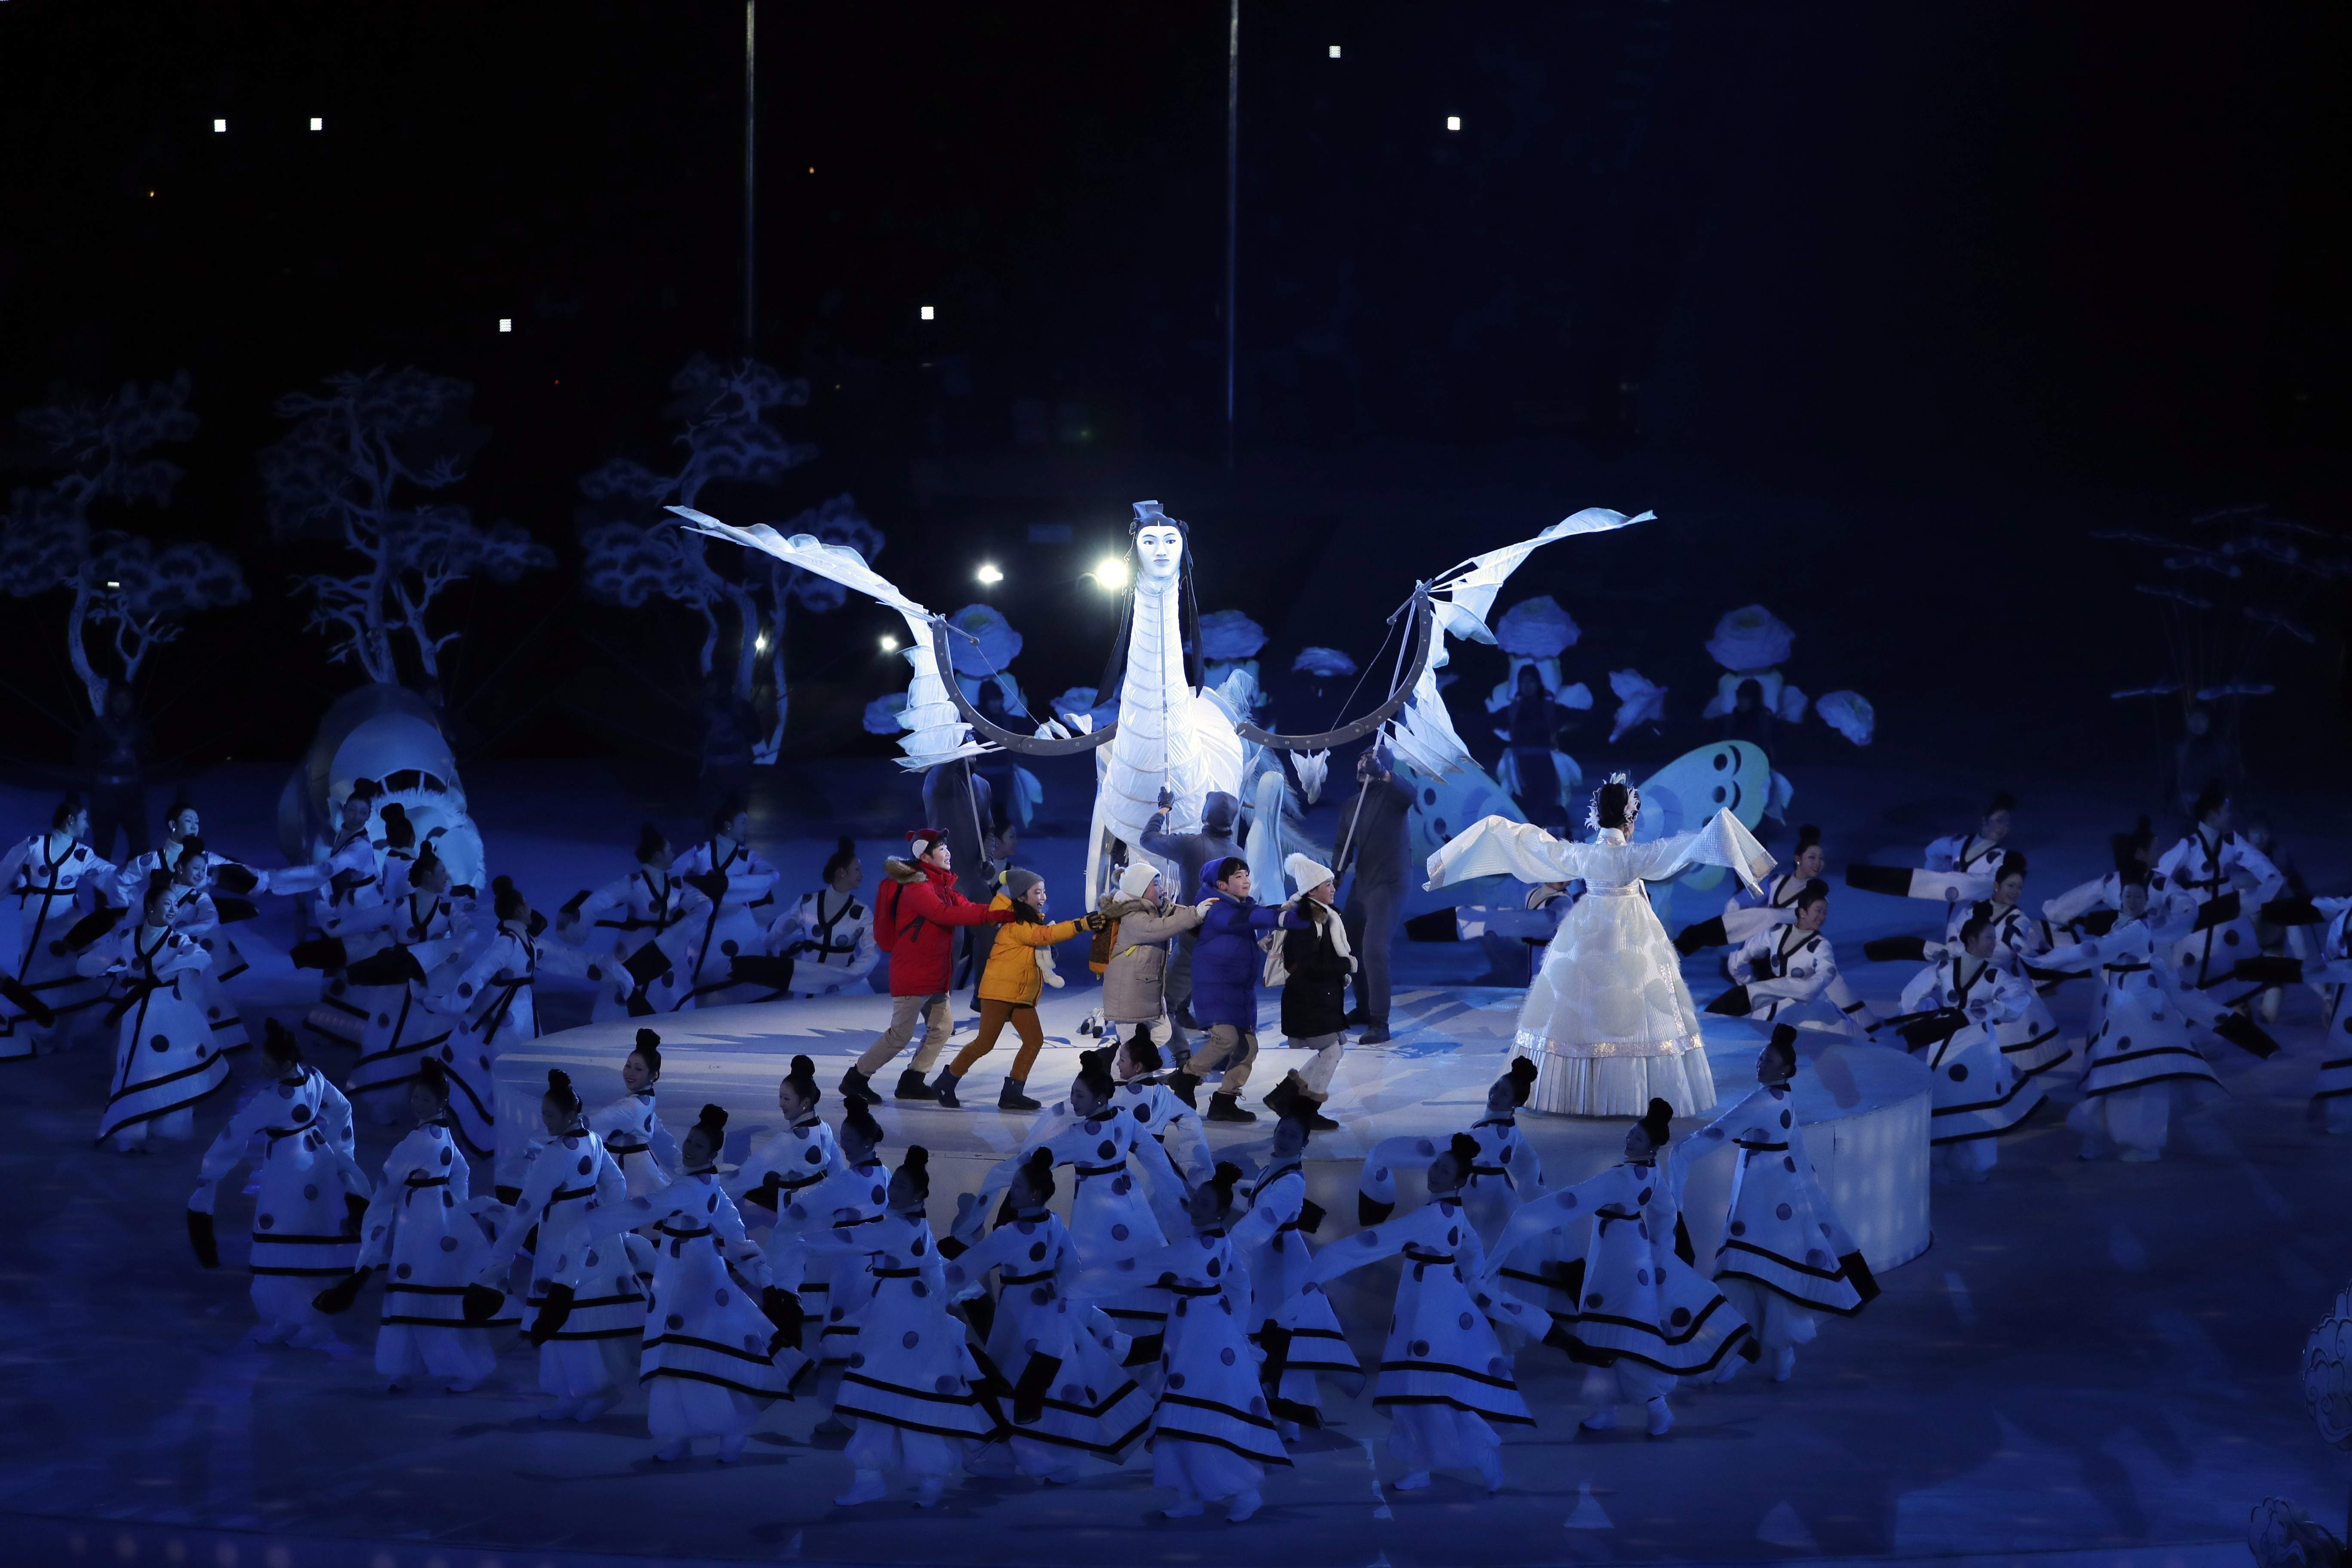 Children perform during the opening ceremony of the 2018 Winter Olympics in Pyeongchang, South Korea, Friday, Feb. 9, 2018. (AP Photo/Julie Jacobson)